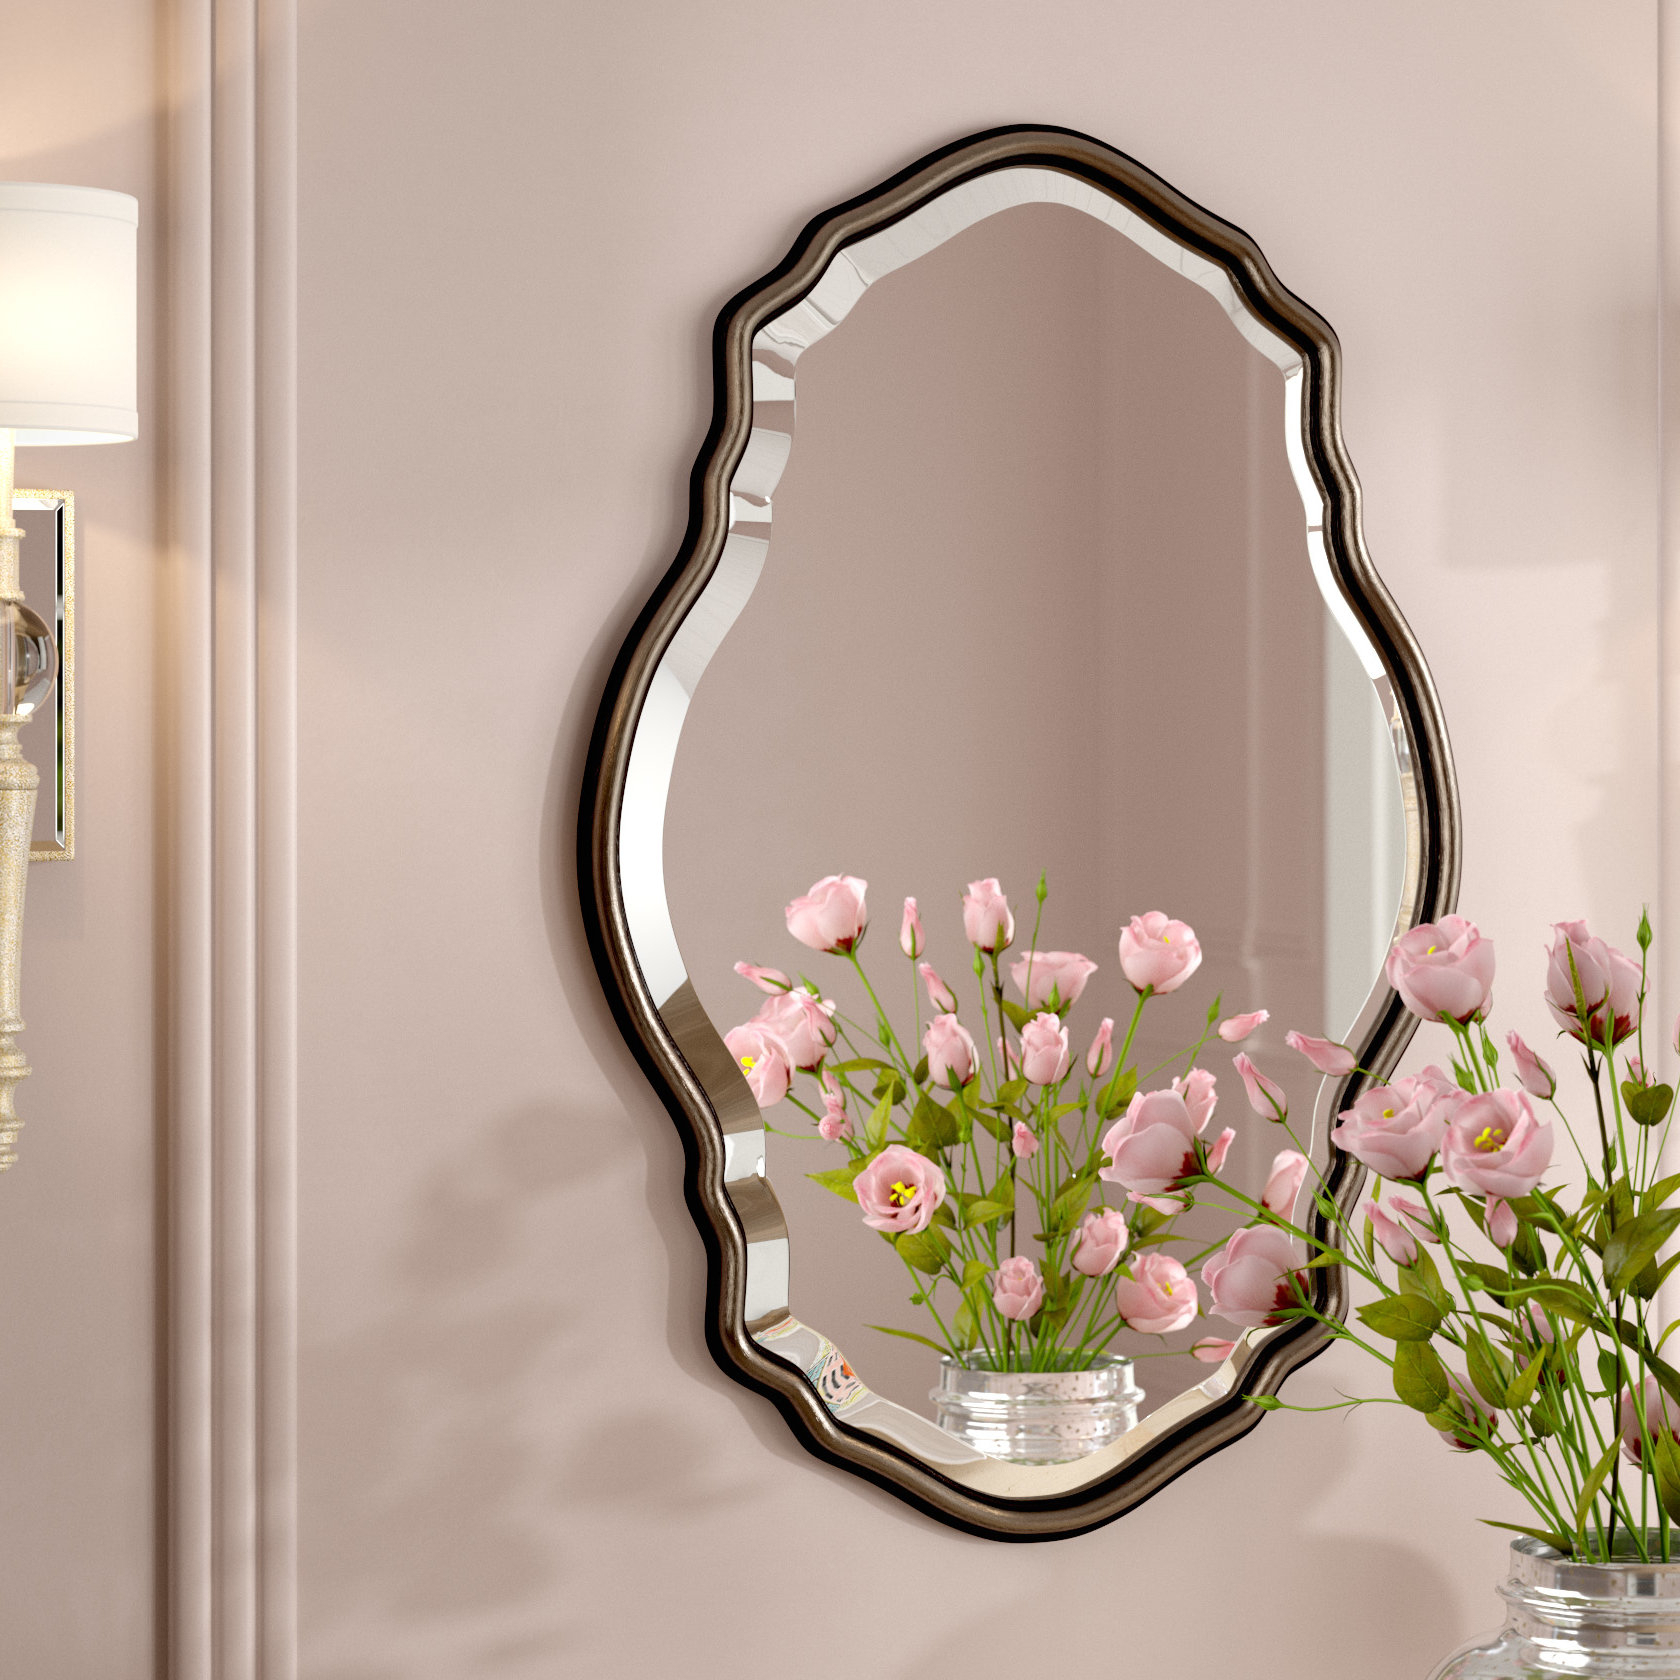 Christner Modern & Contemporary Beveled Wall Mirror Pertaining To Best And Newest Estefania Frameless Wall Mirrors (View 3 of 20)